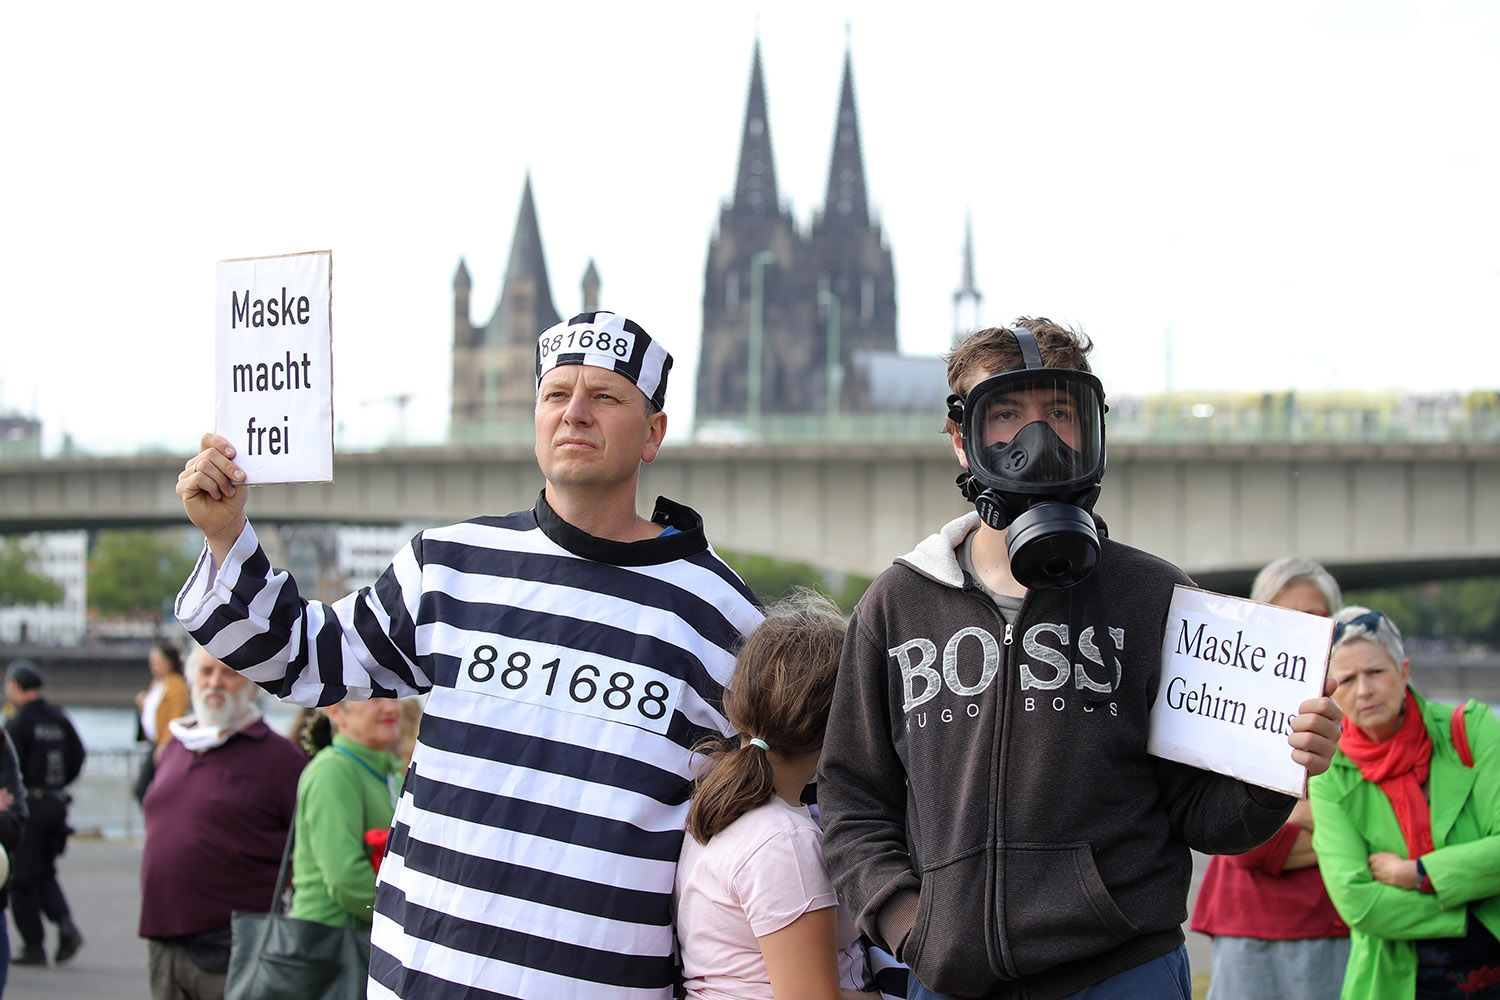 Protesters gather to demonstrate against coronavirus lockdown measures in Cologne, Germany, on May 23, 2020.